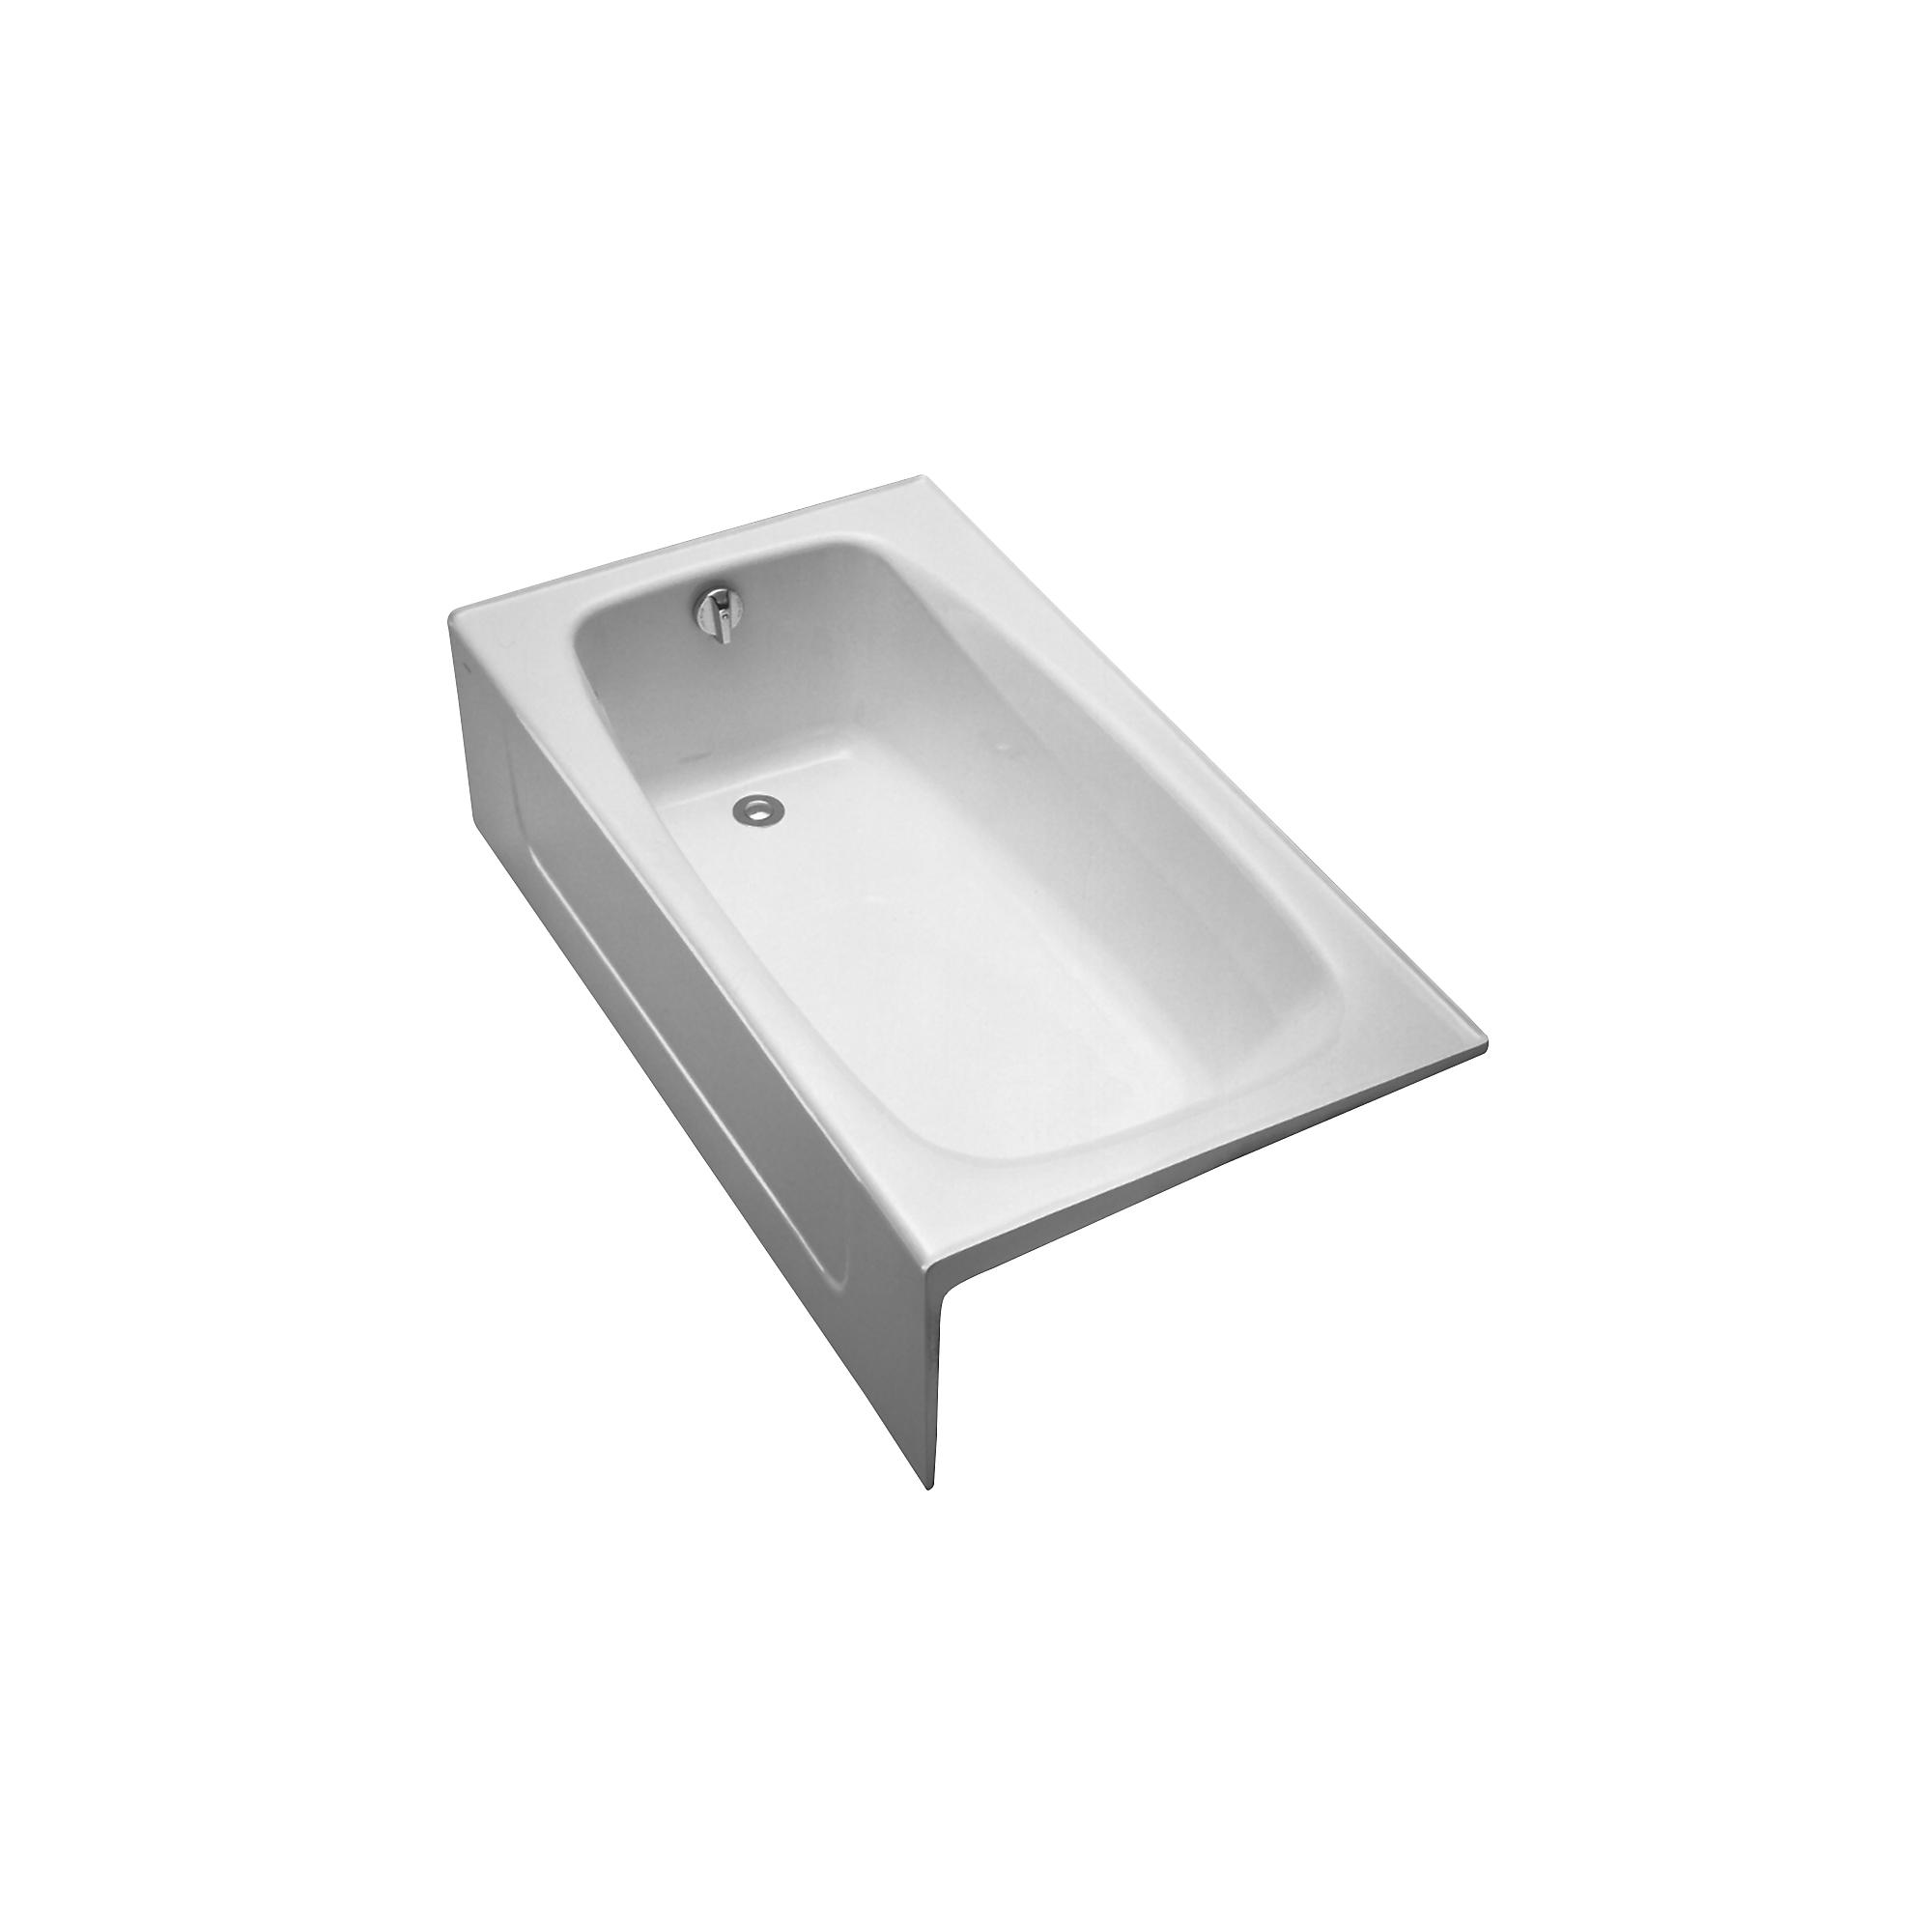 Fby1525rp 01 enameled cast iron bathtub 59 3 4  x 32  x 16 3 4  0